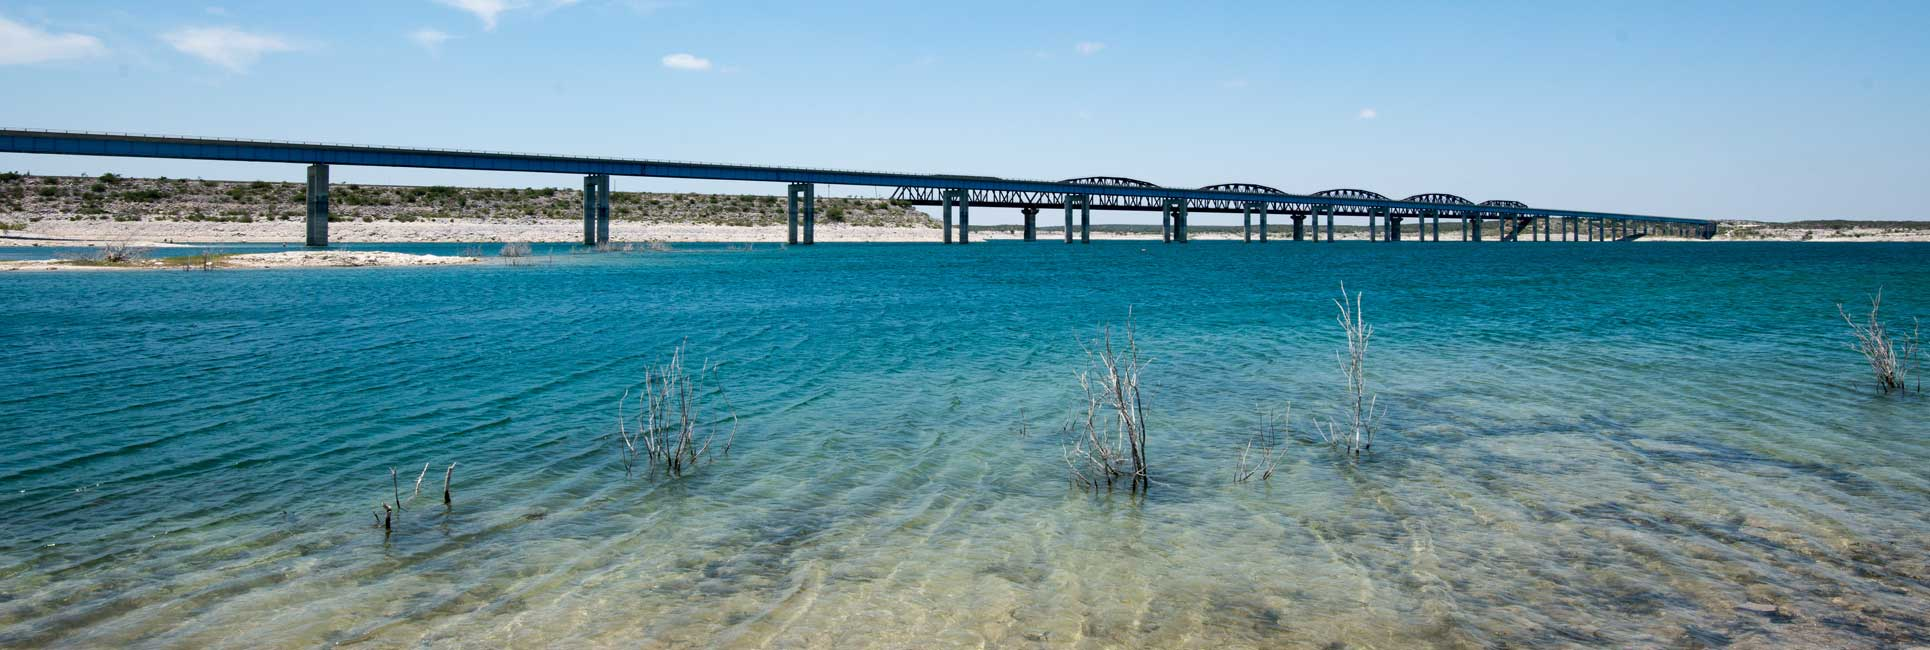 A highway bridge that runs across the fishing spots of Lake Amistad, TX